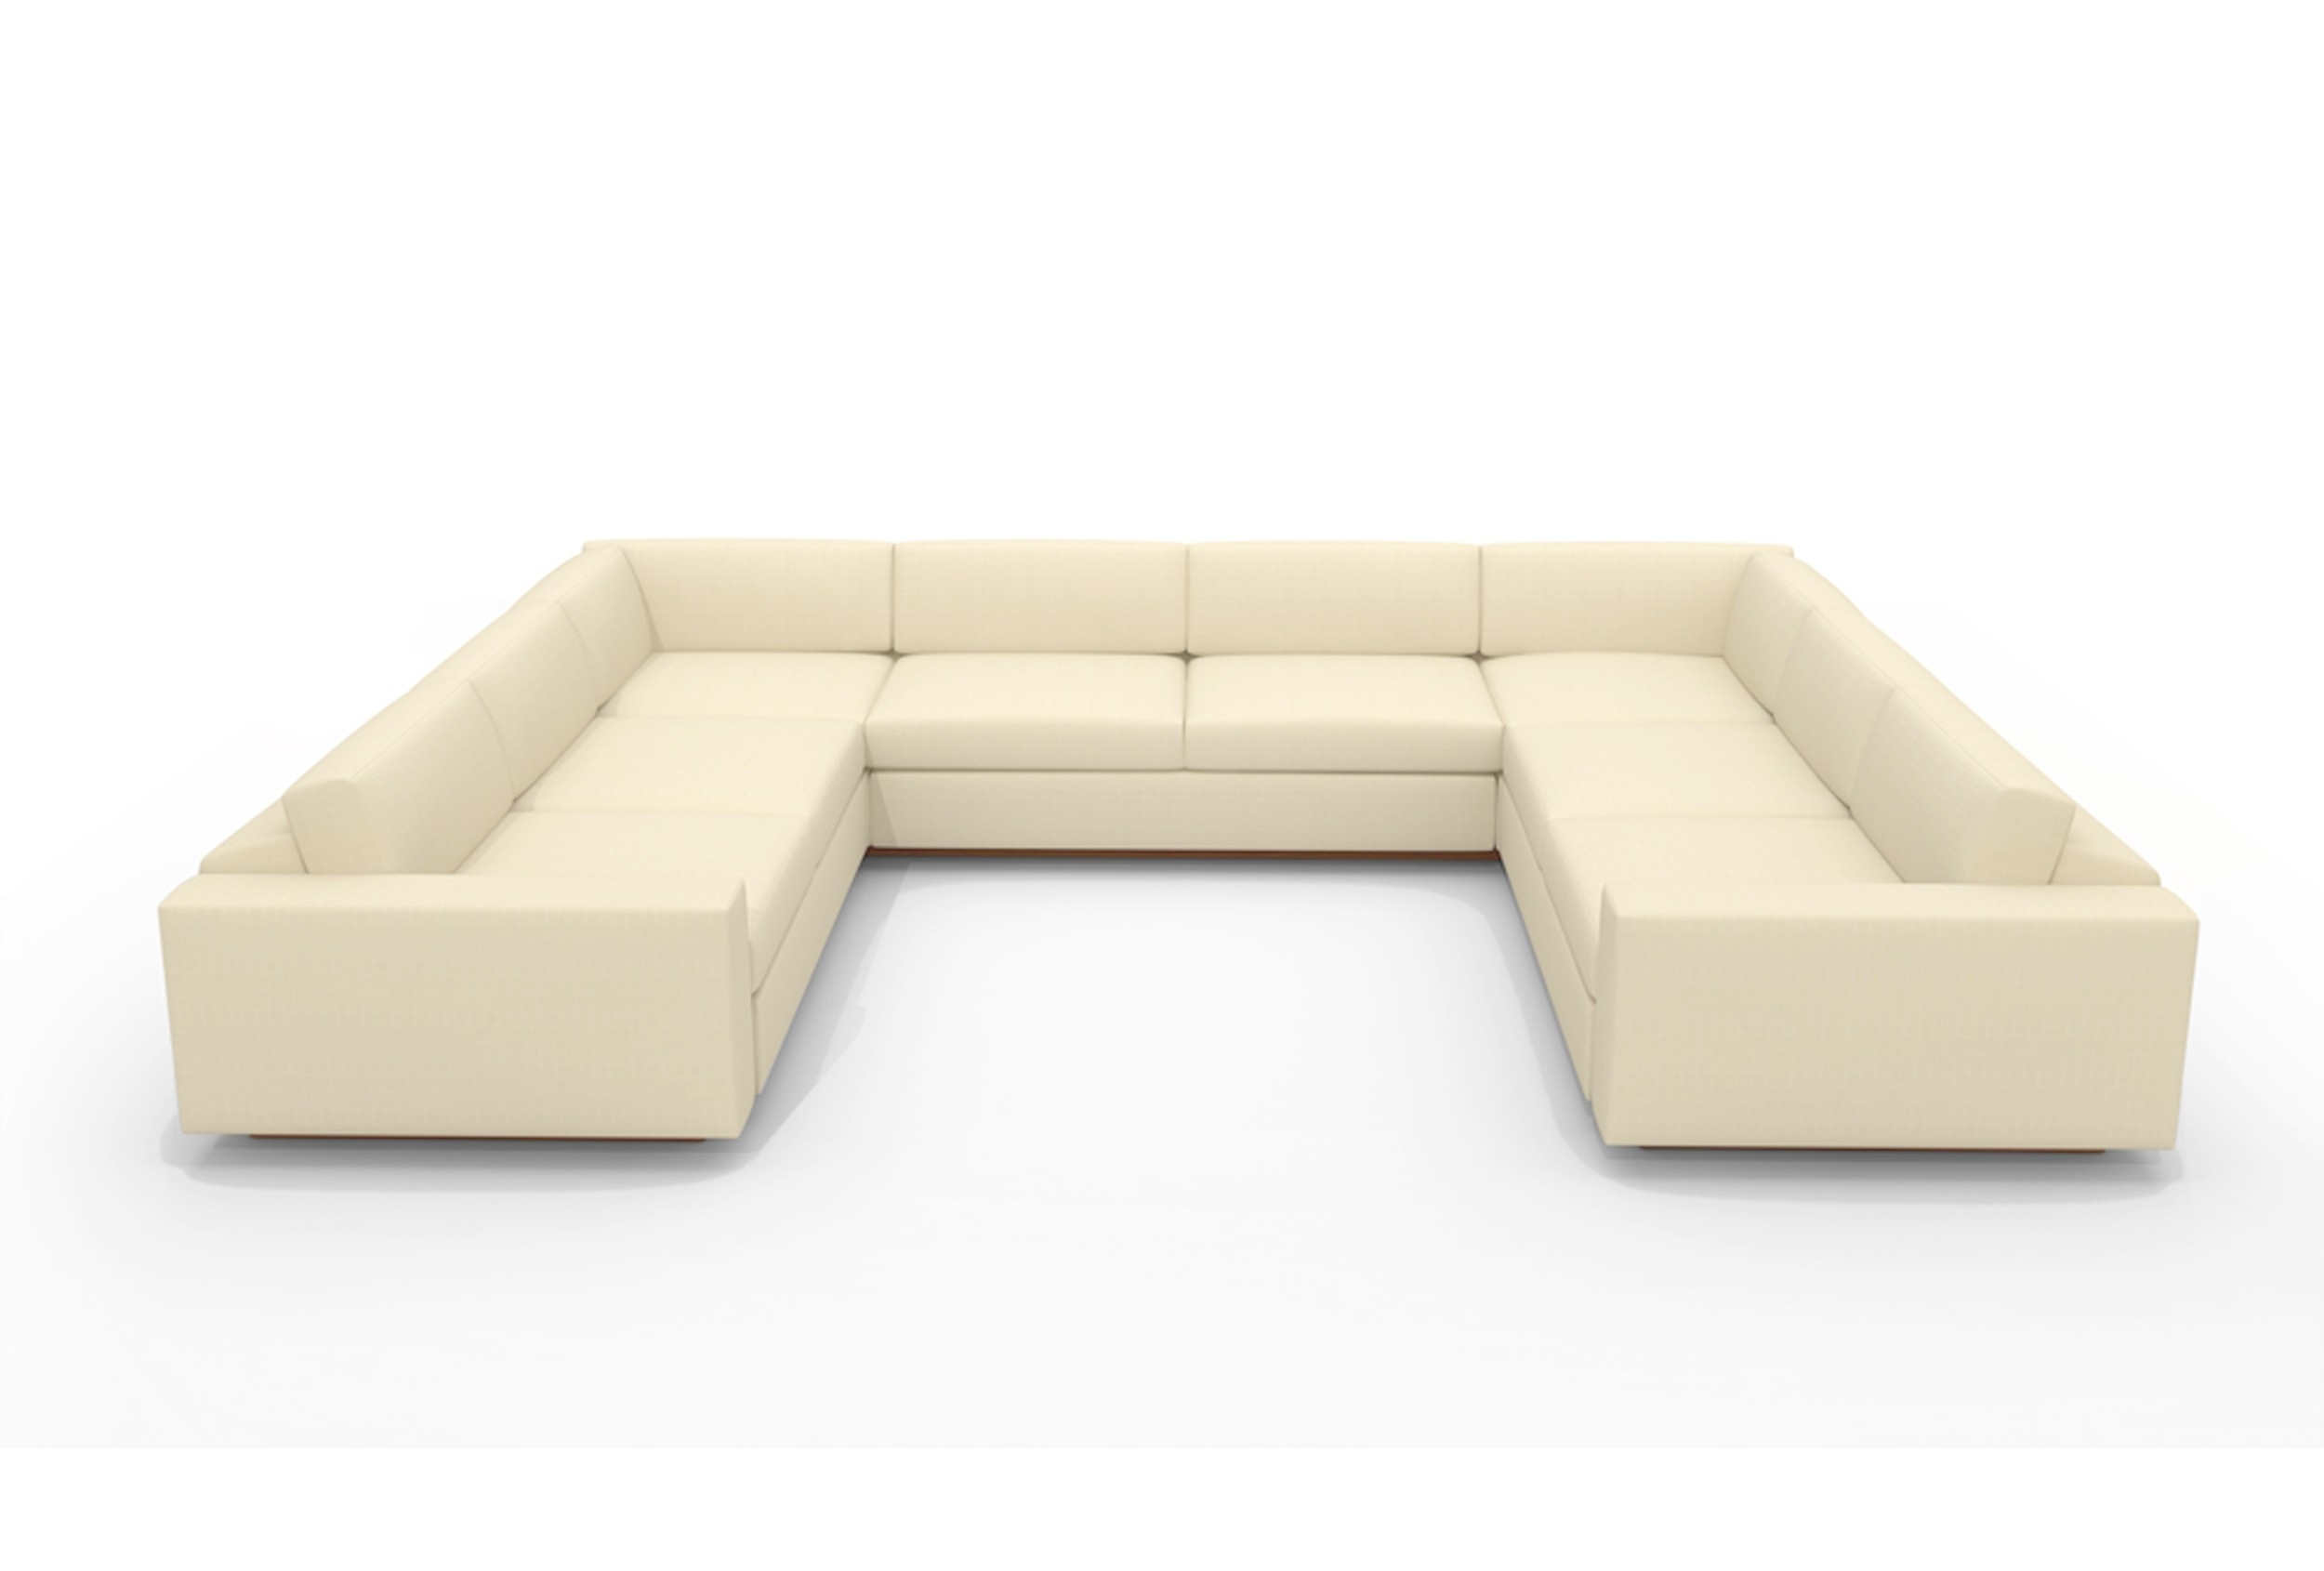 U Shaped White Leather Sectional Sofa With Back And Arm Of Marvelous in U Shaped Leather Sectional Sofas (Image 10 of 10)